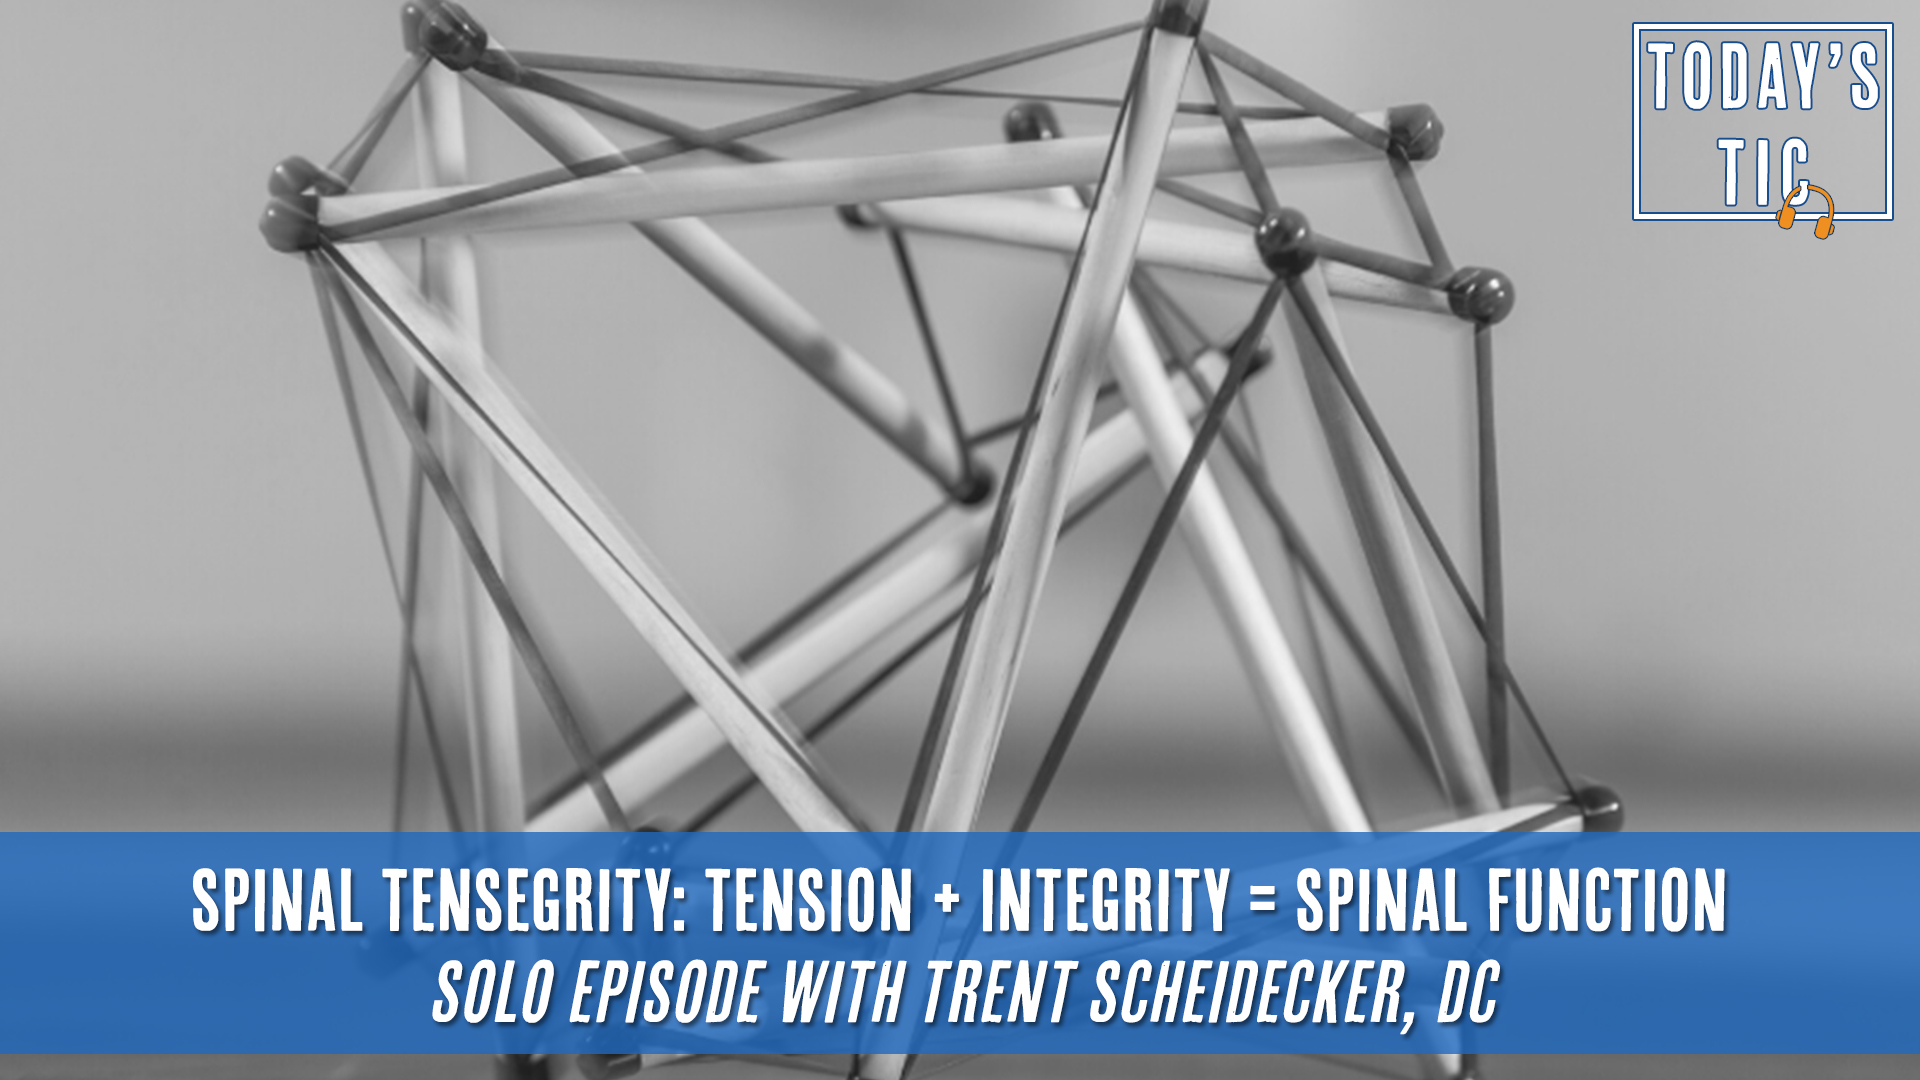 spinal tensegrity